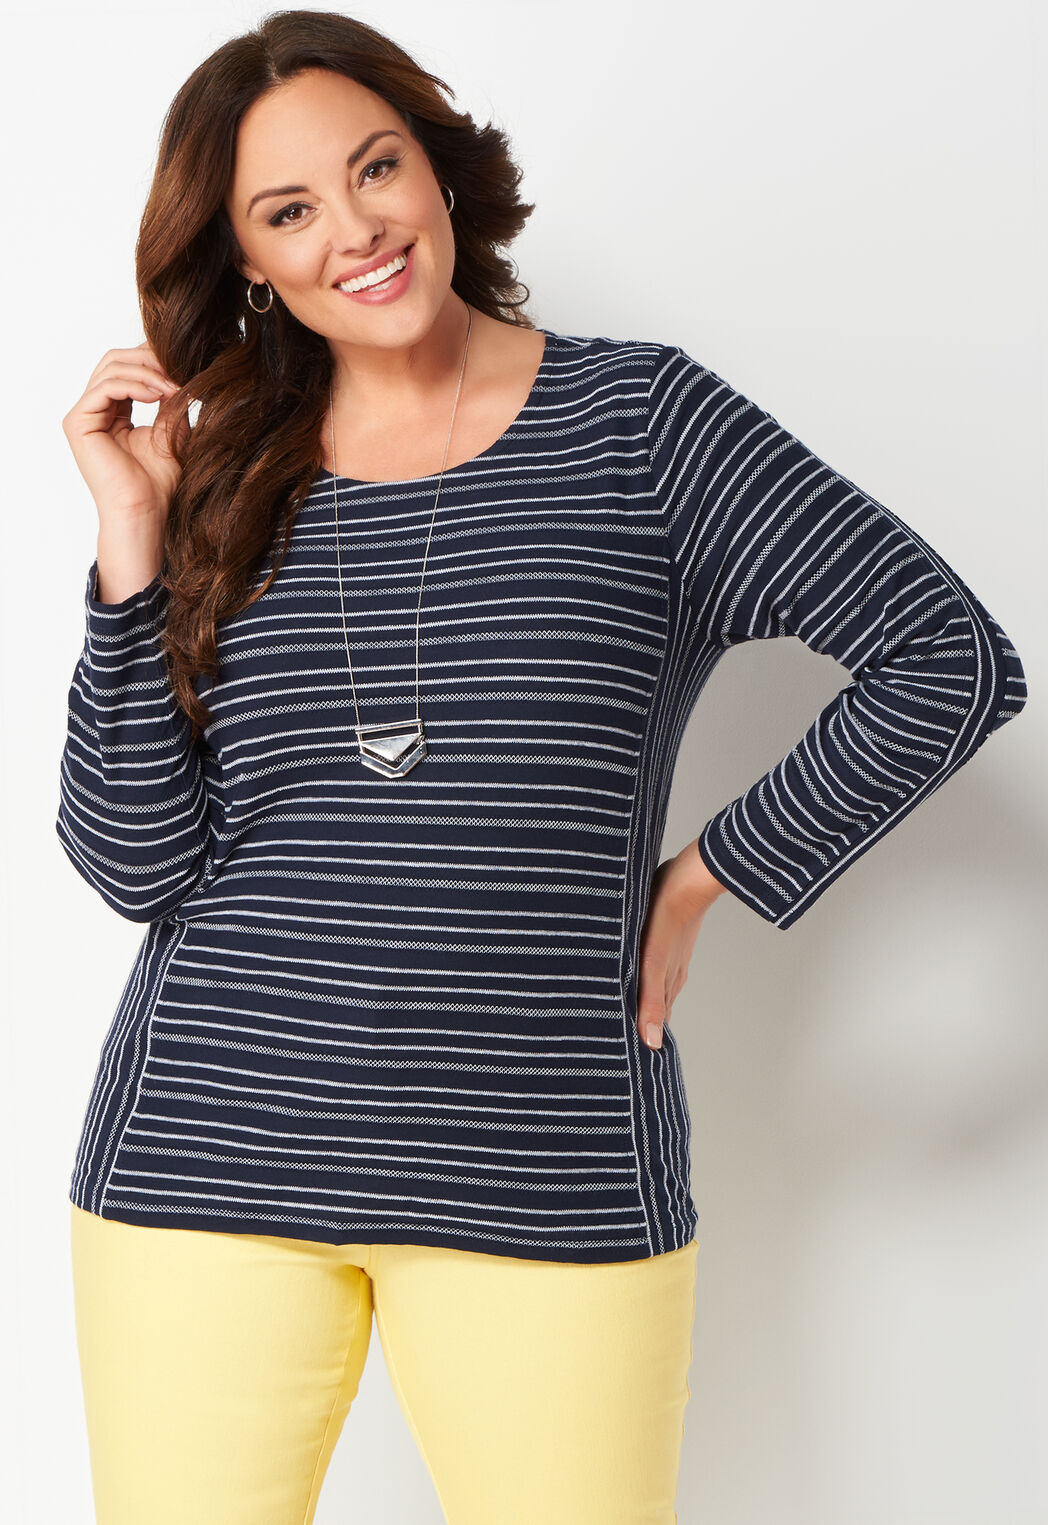 women's textured stripe plus size knit top from christopher